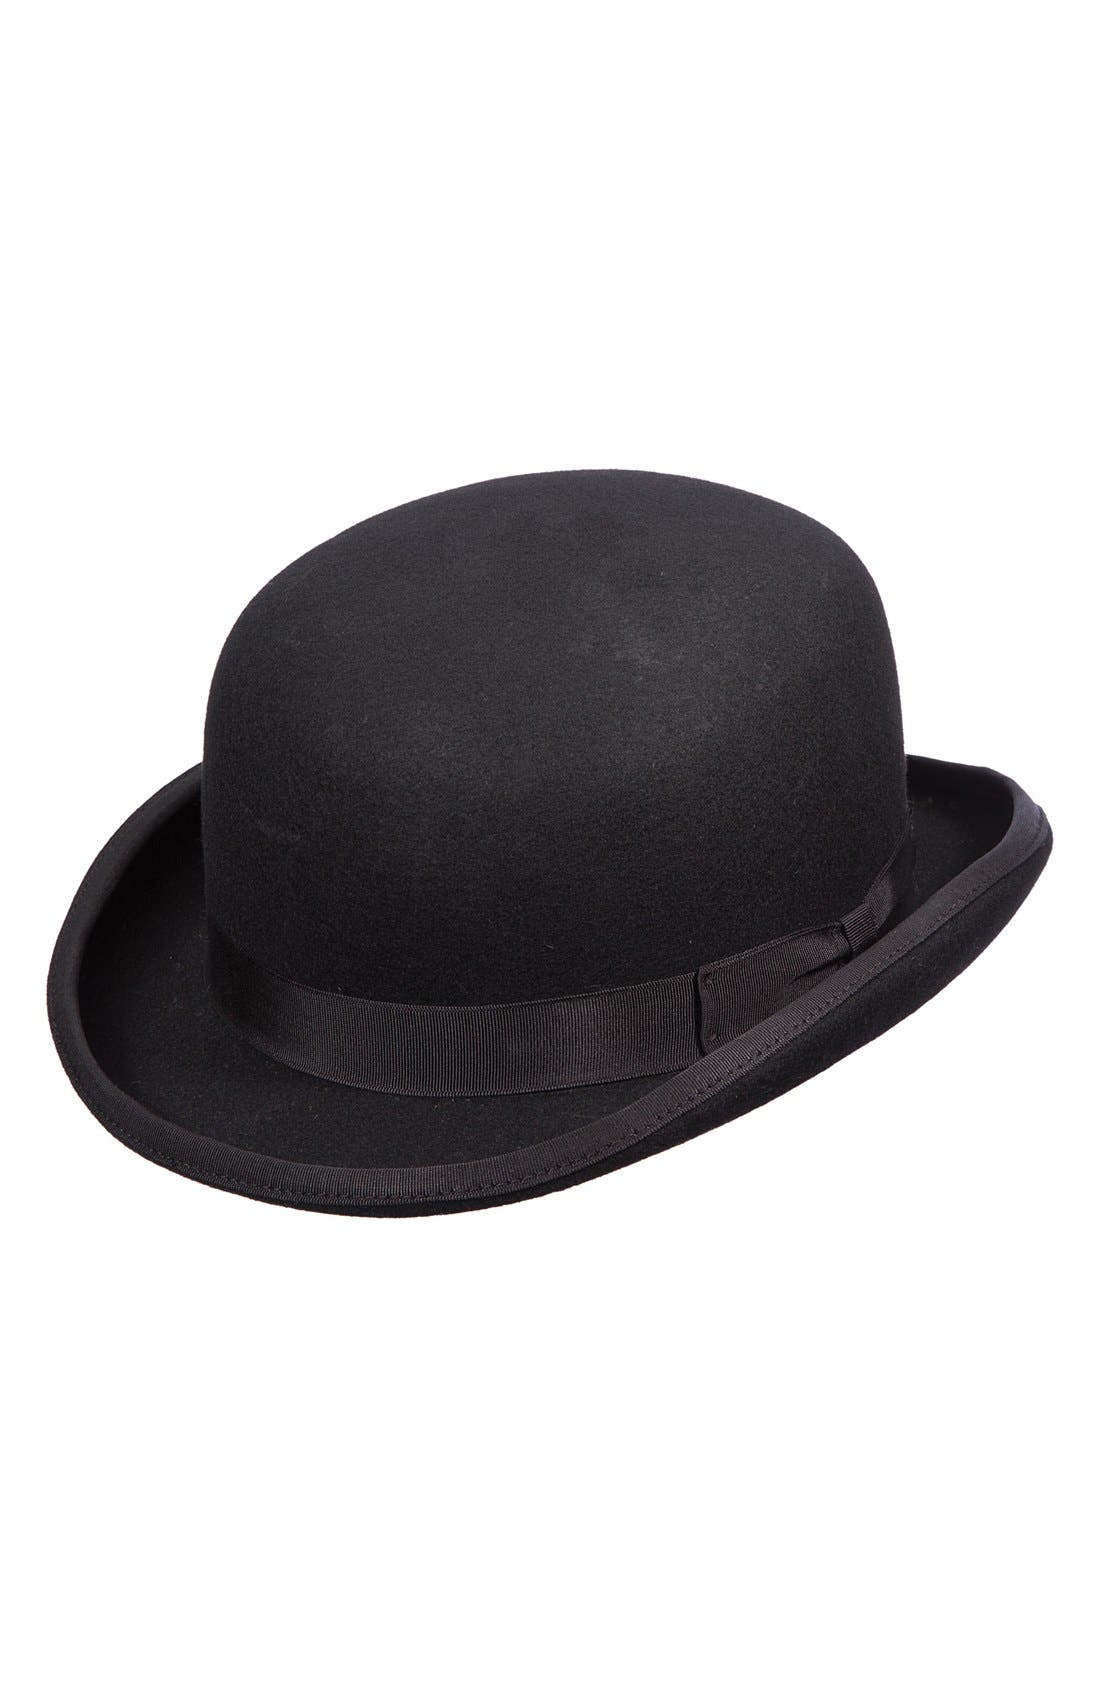 Men's Steampunk Clothing, Costumes, Fashion Mens Scala Wool Felt Bowler Hat - Black $51.00 AT vintagedancer.com